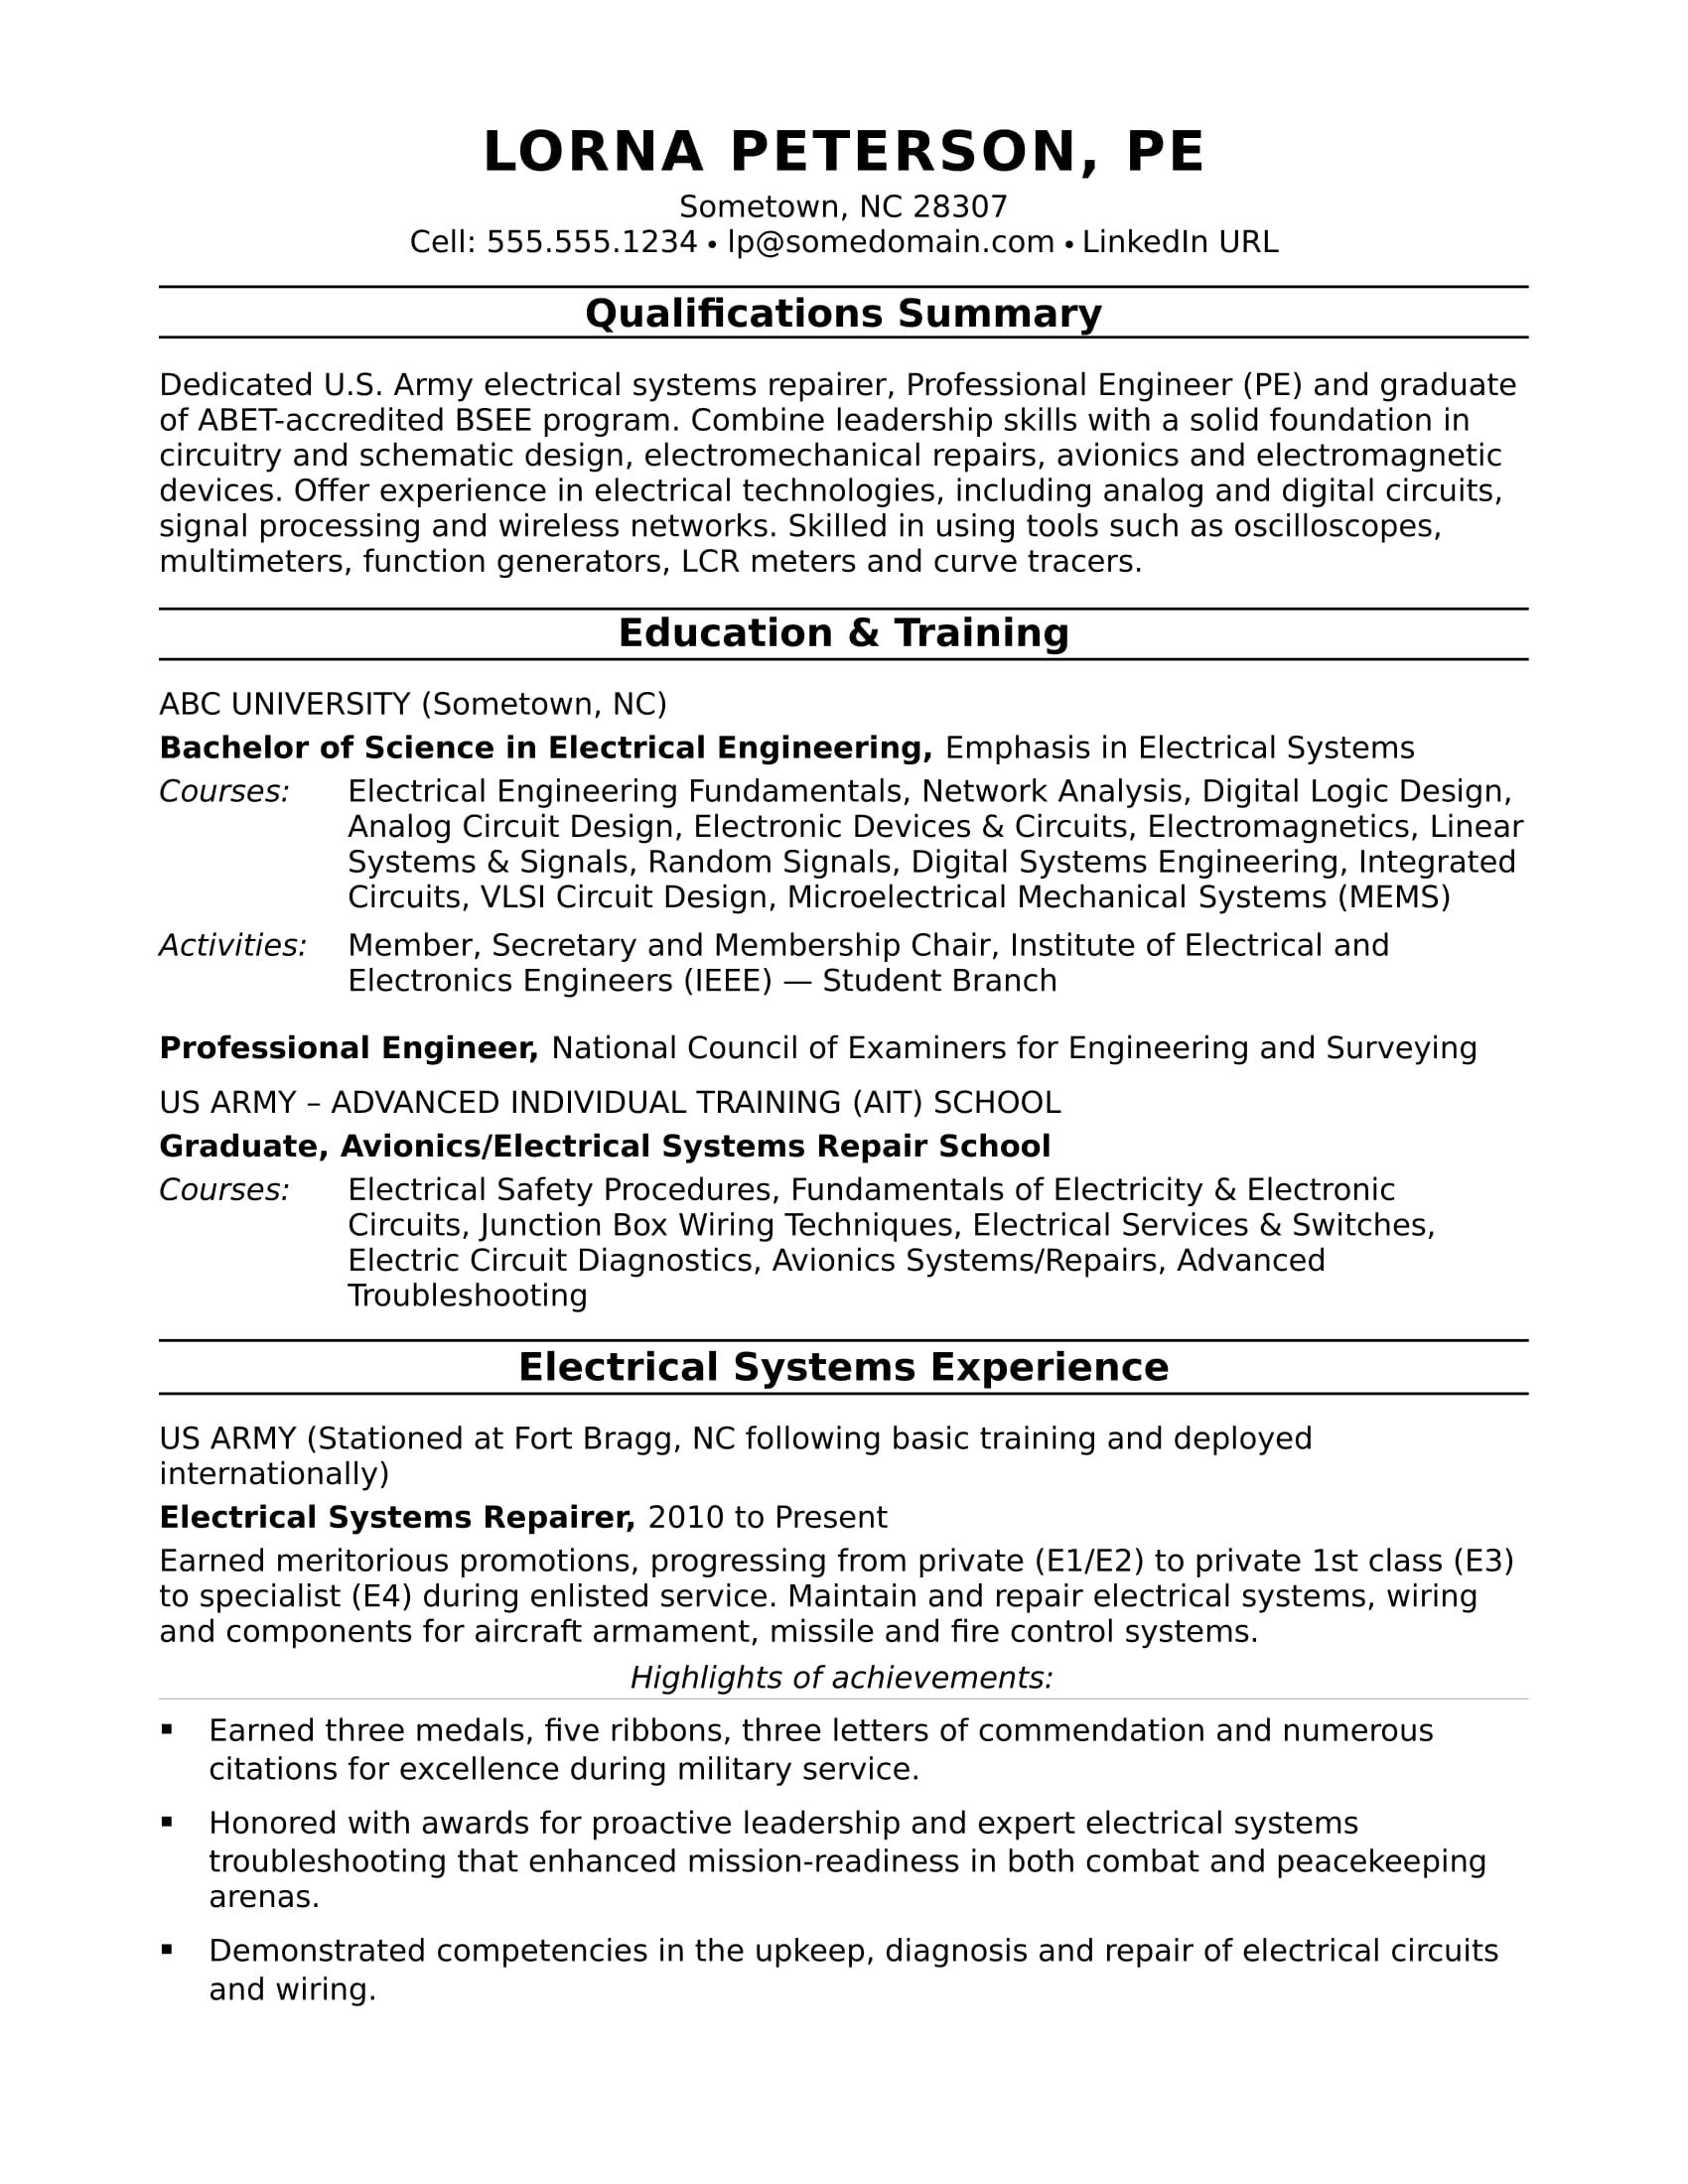 view this electrical engineer resume sample to see you can communicate your engineering Resume Technical Skills For Electrical Engineer Resume